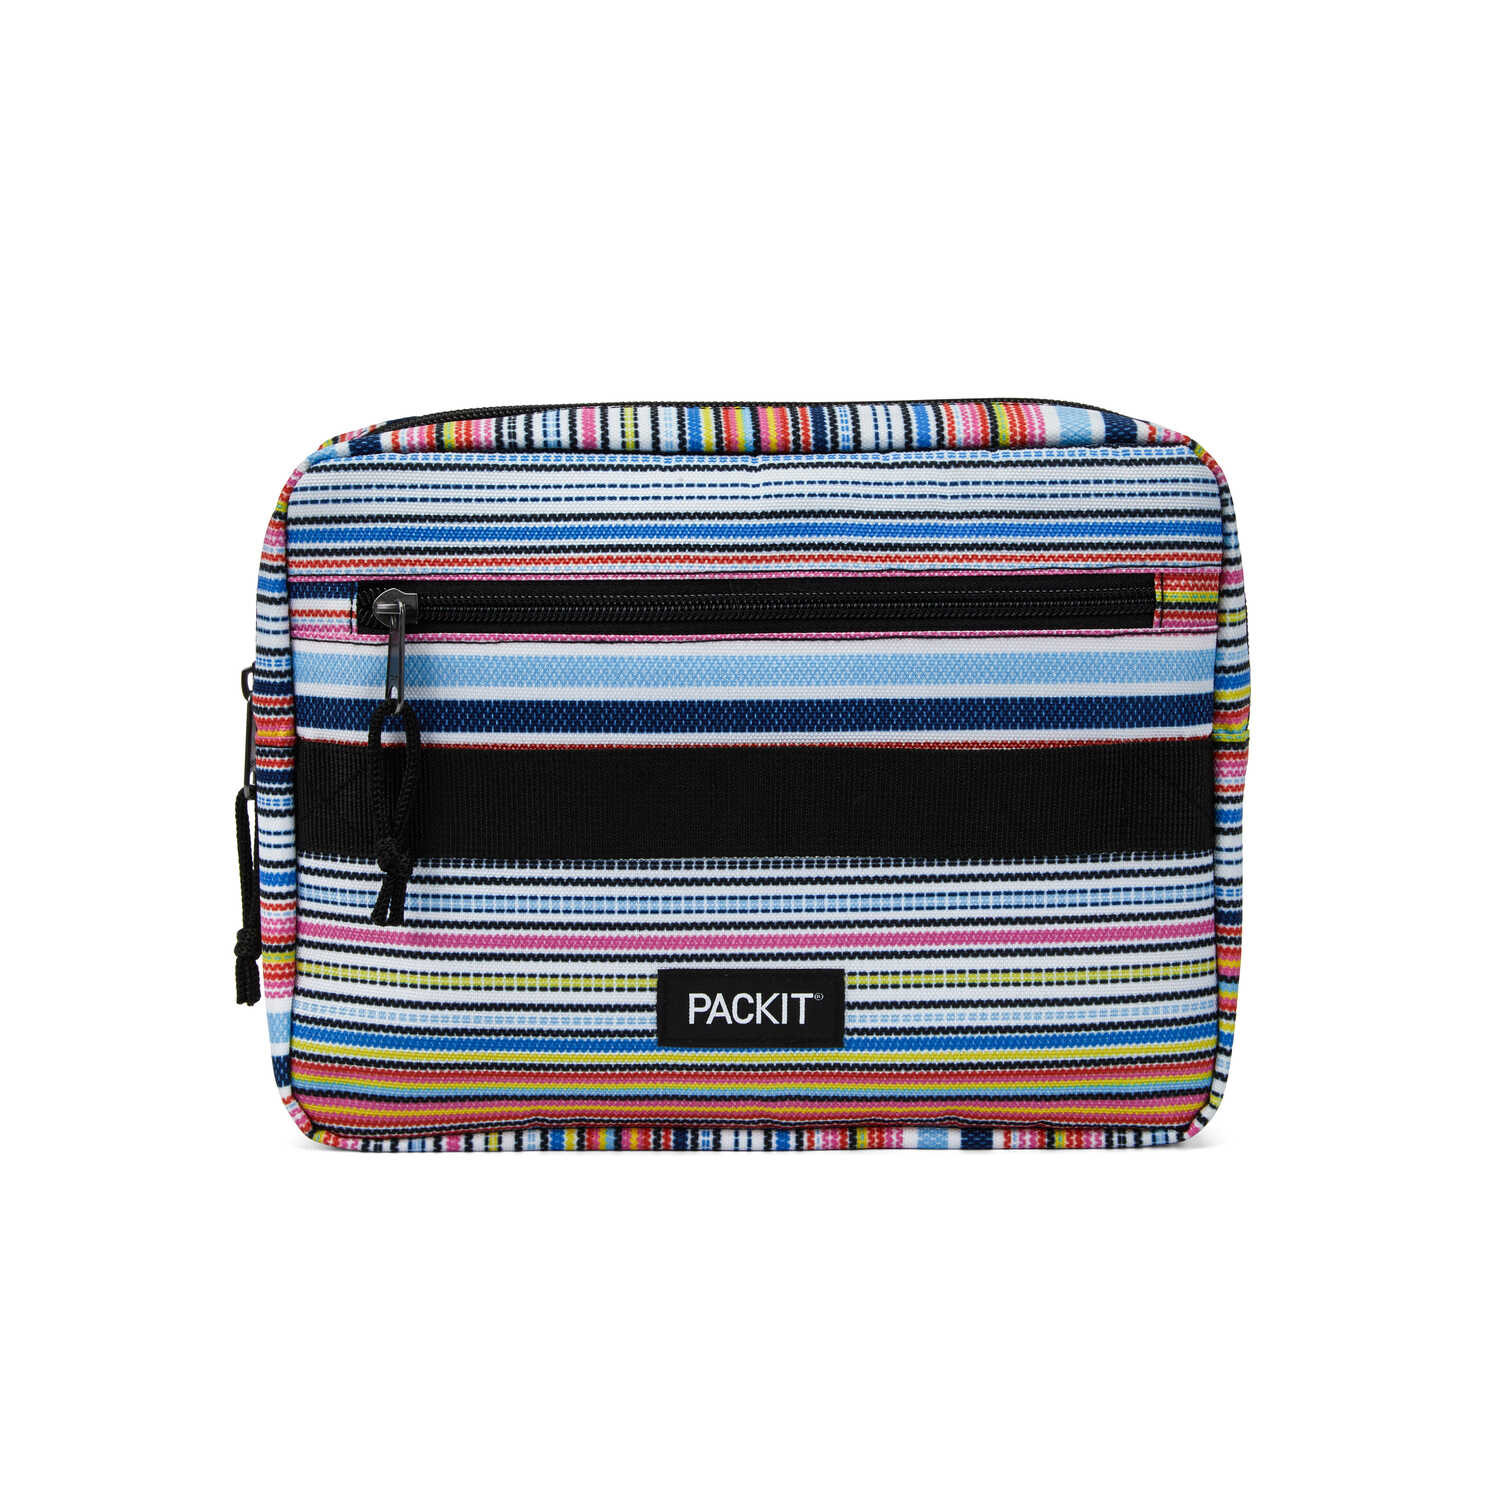 PACKIT  3.5  Lunch Bag Cooler  Multicolored